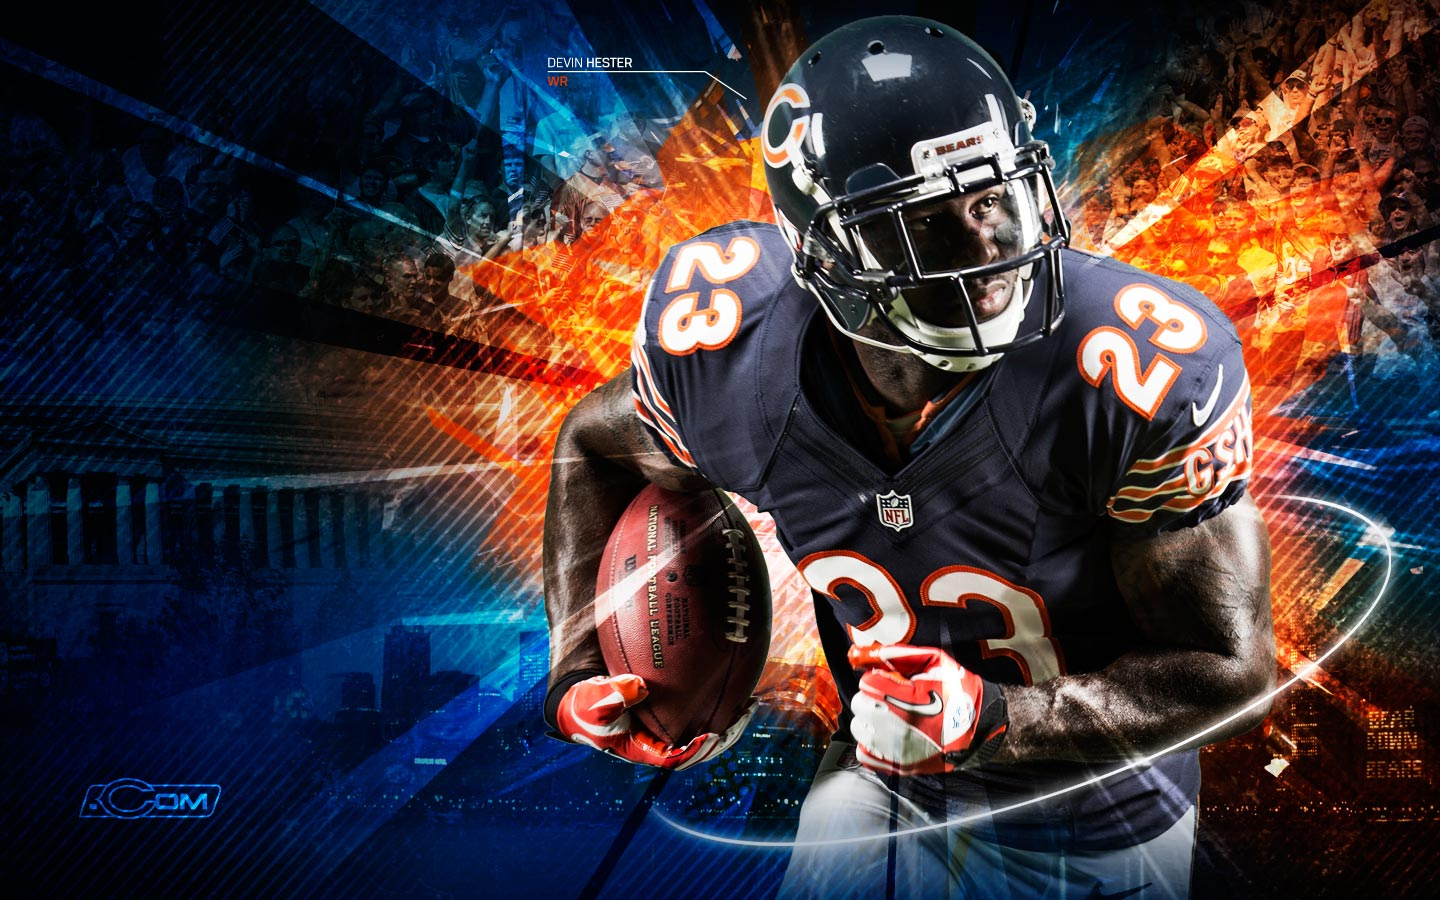 Chicago Bears Nfl Player Wallpaper   1440x900 iWallHD   Wallpaper HD 1440x900